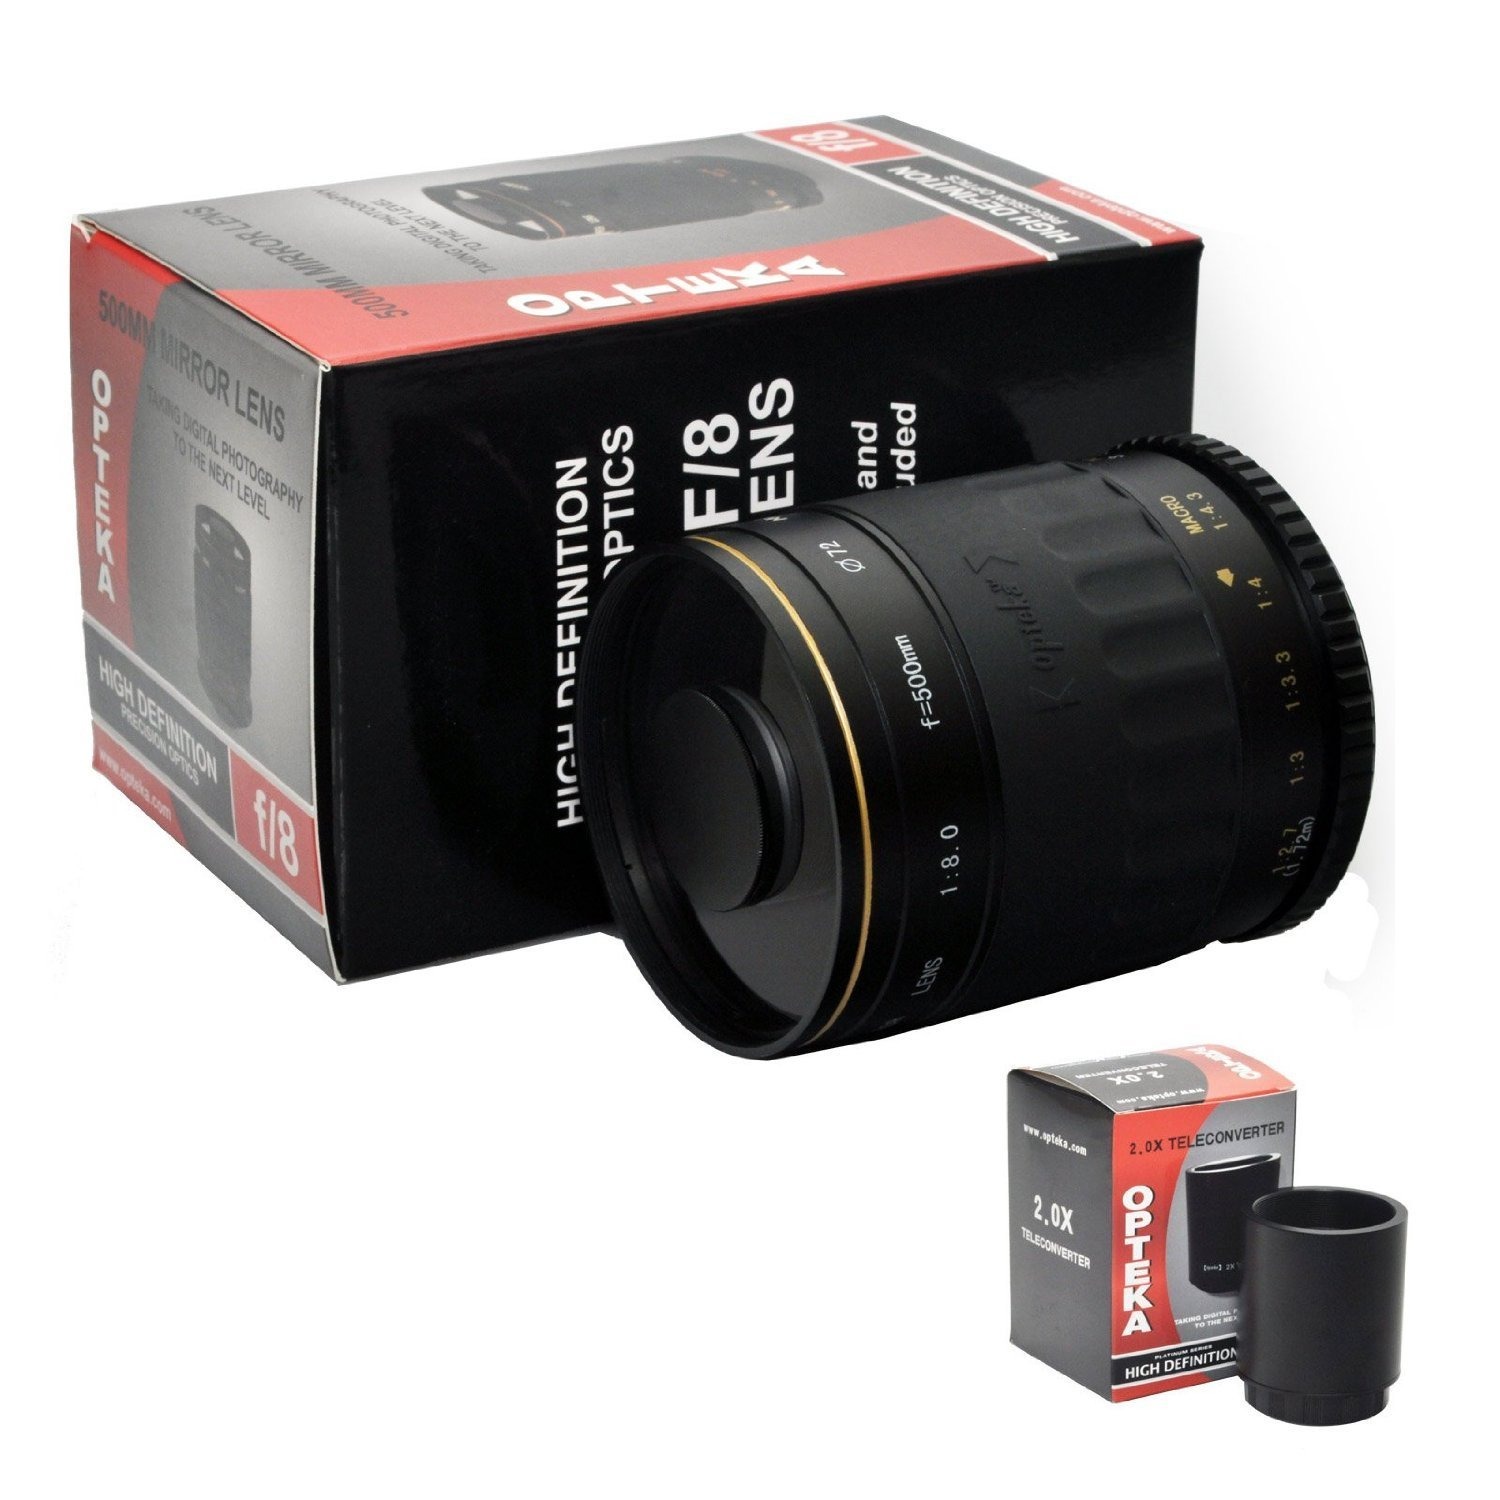 Opteka 500-1000mm f/8 High Definition Telephoto Mirror Le...